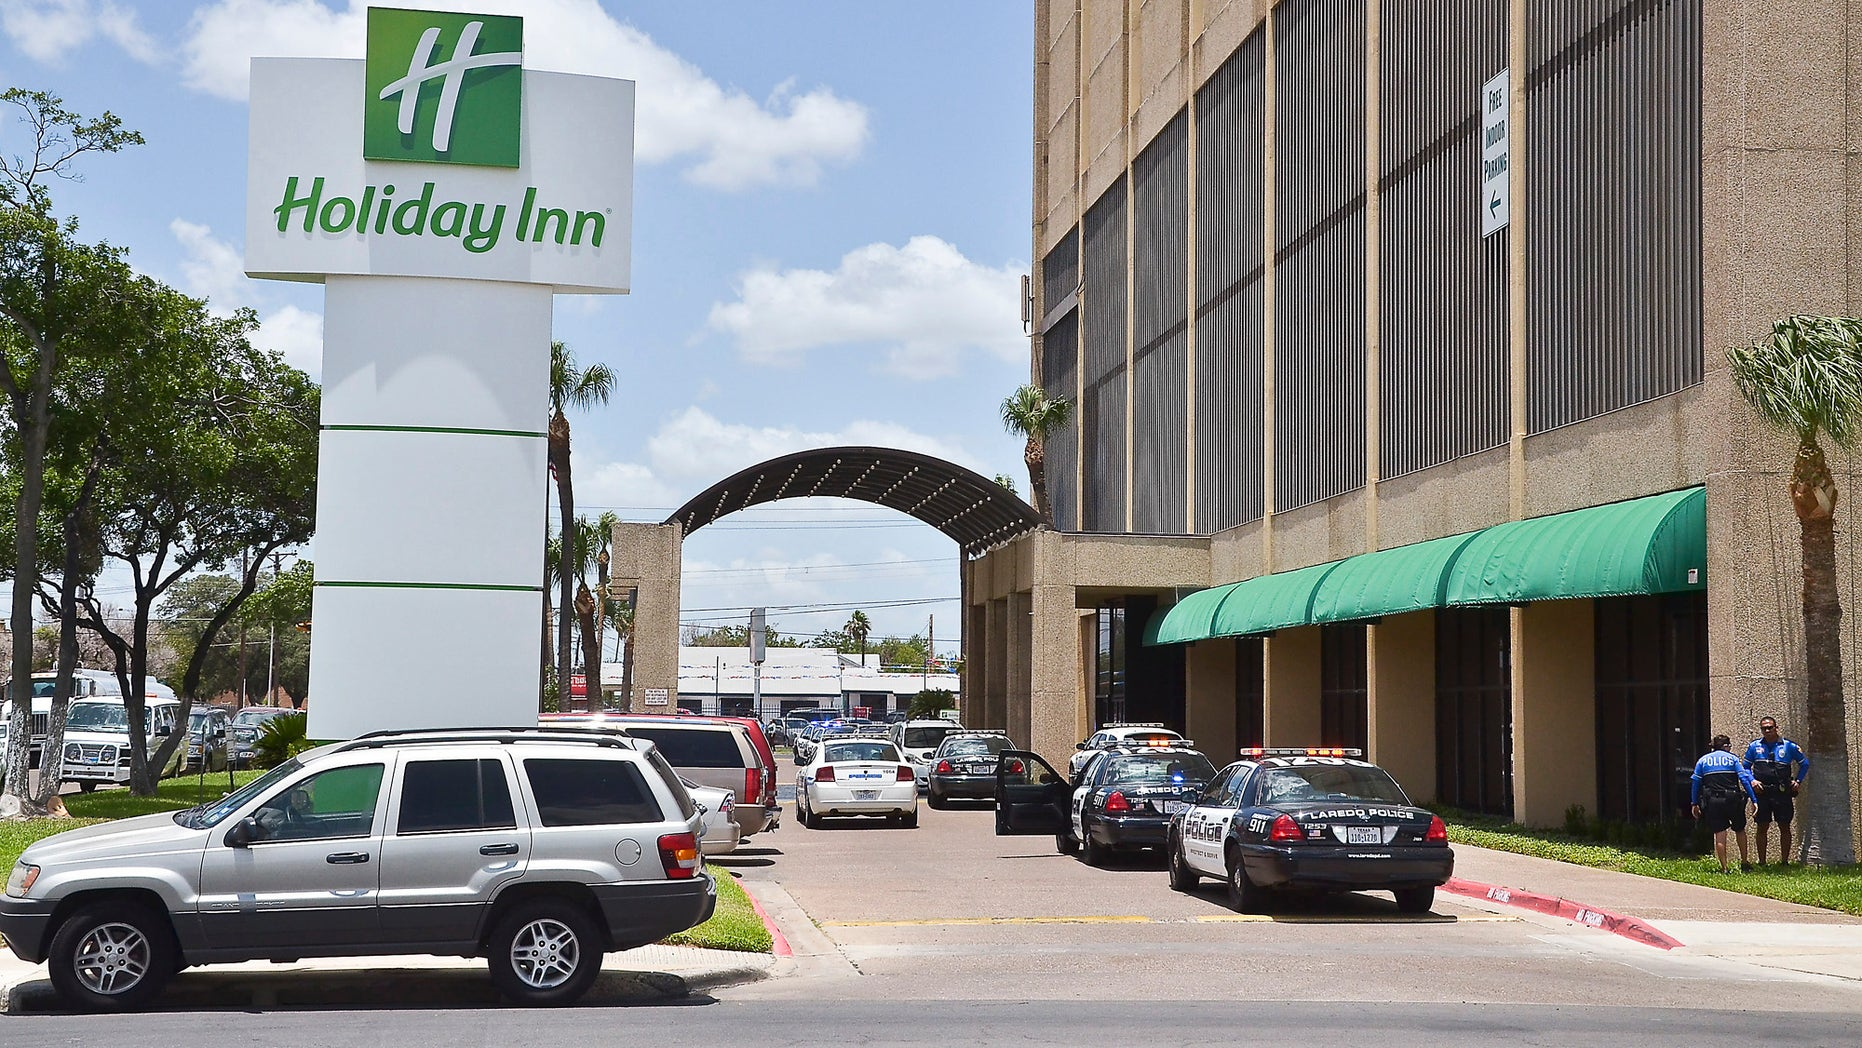 June 19, 2012: A line of Laredo Police Department vehicles line the entrance to the Holiday Inn Civic Center in Laredo, Texas, where two young boys were shot.